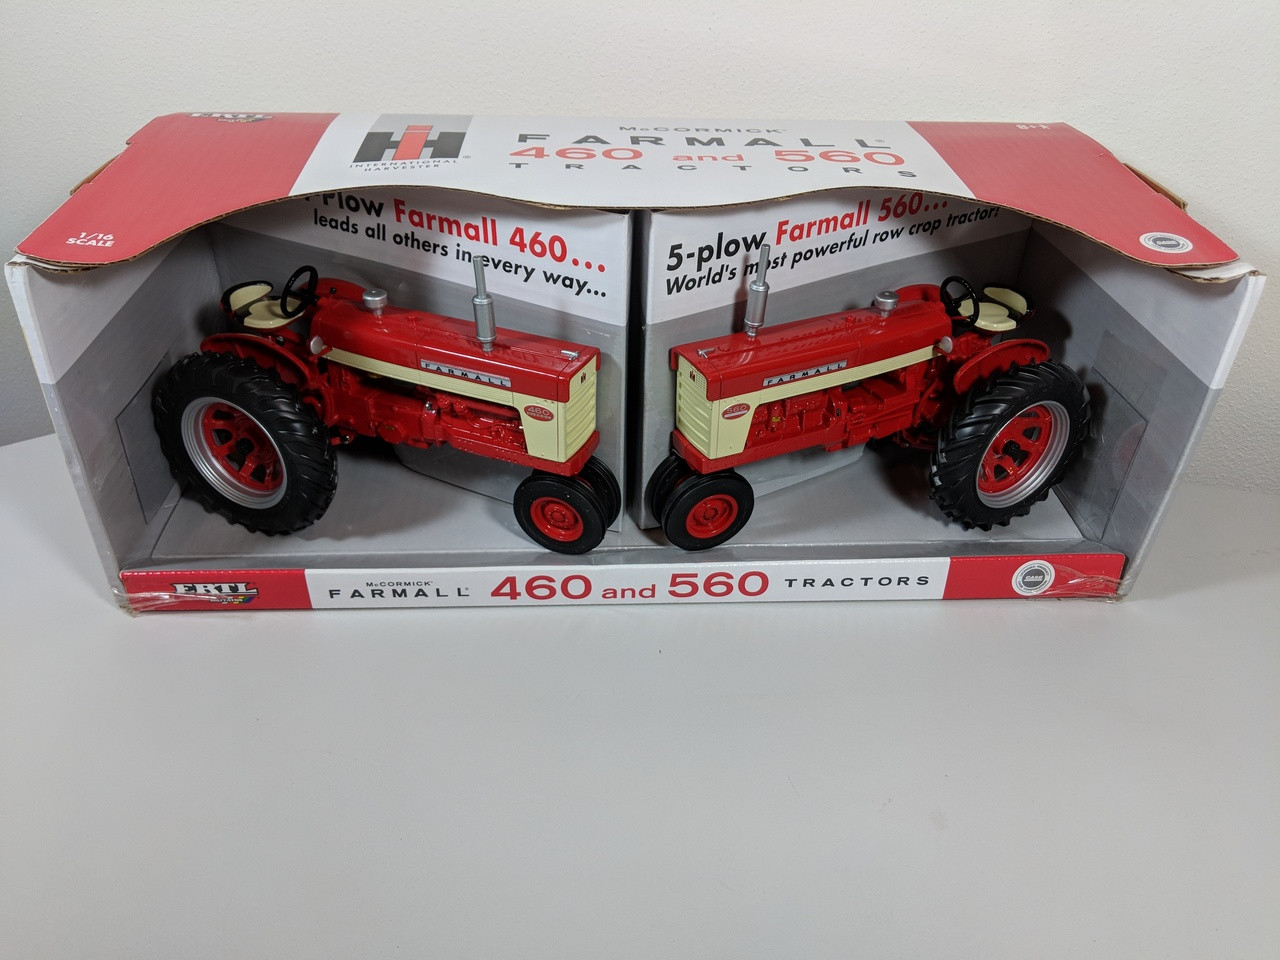 small resolution of 1 16 farmall 460 and 560 2 piece tractor set collector edition set also 806 farmall tractor wiring harness in addition 560 farmall